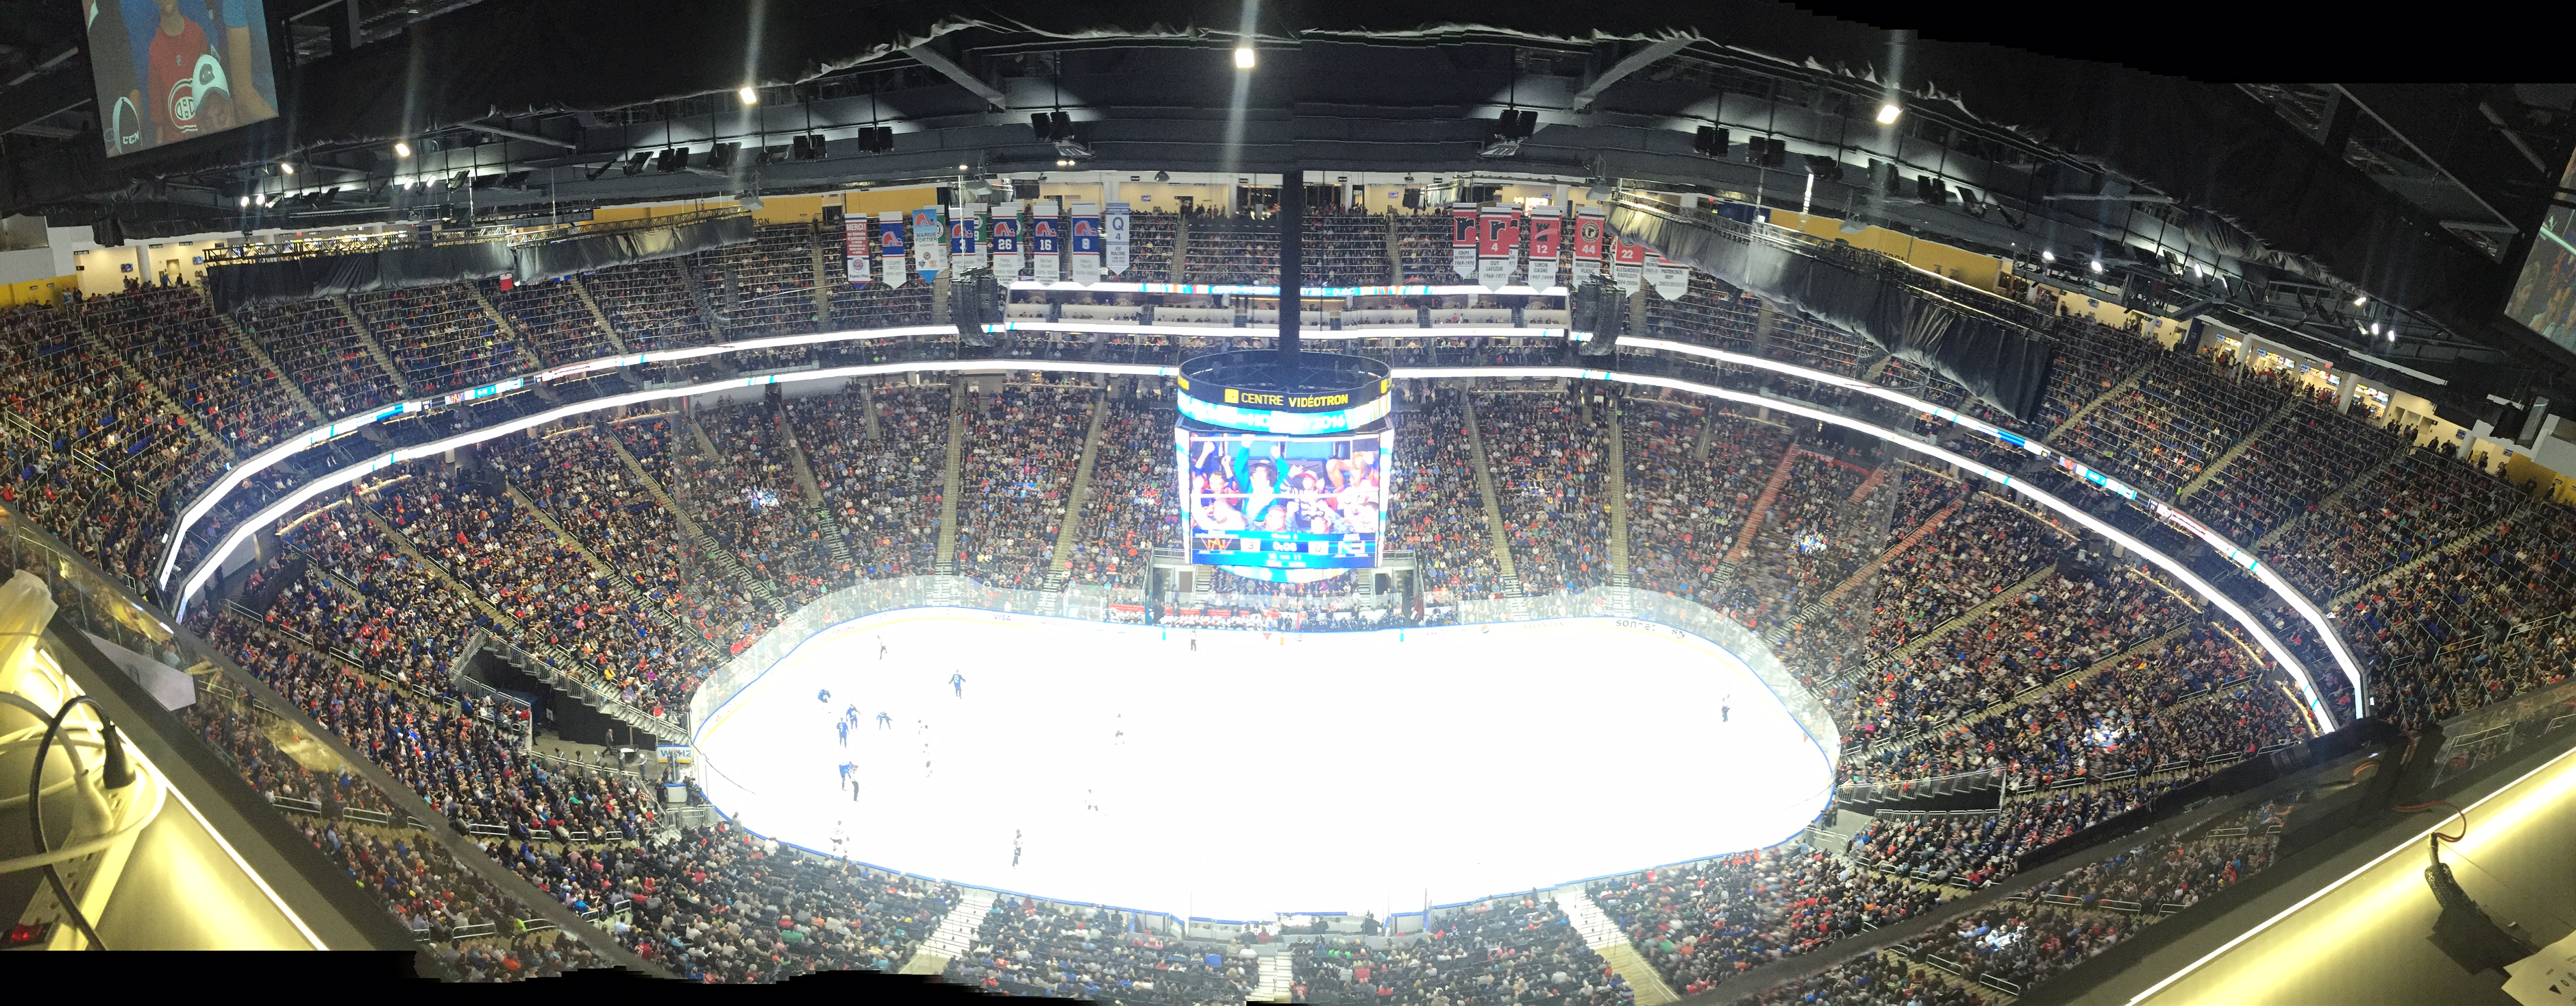 A crowd of 18,005 filled the Videotron Centre on Thursday night (Mike Harrington/Buffalo News).